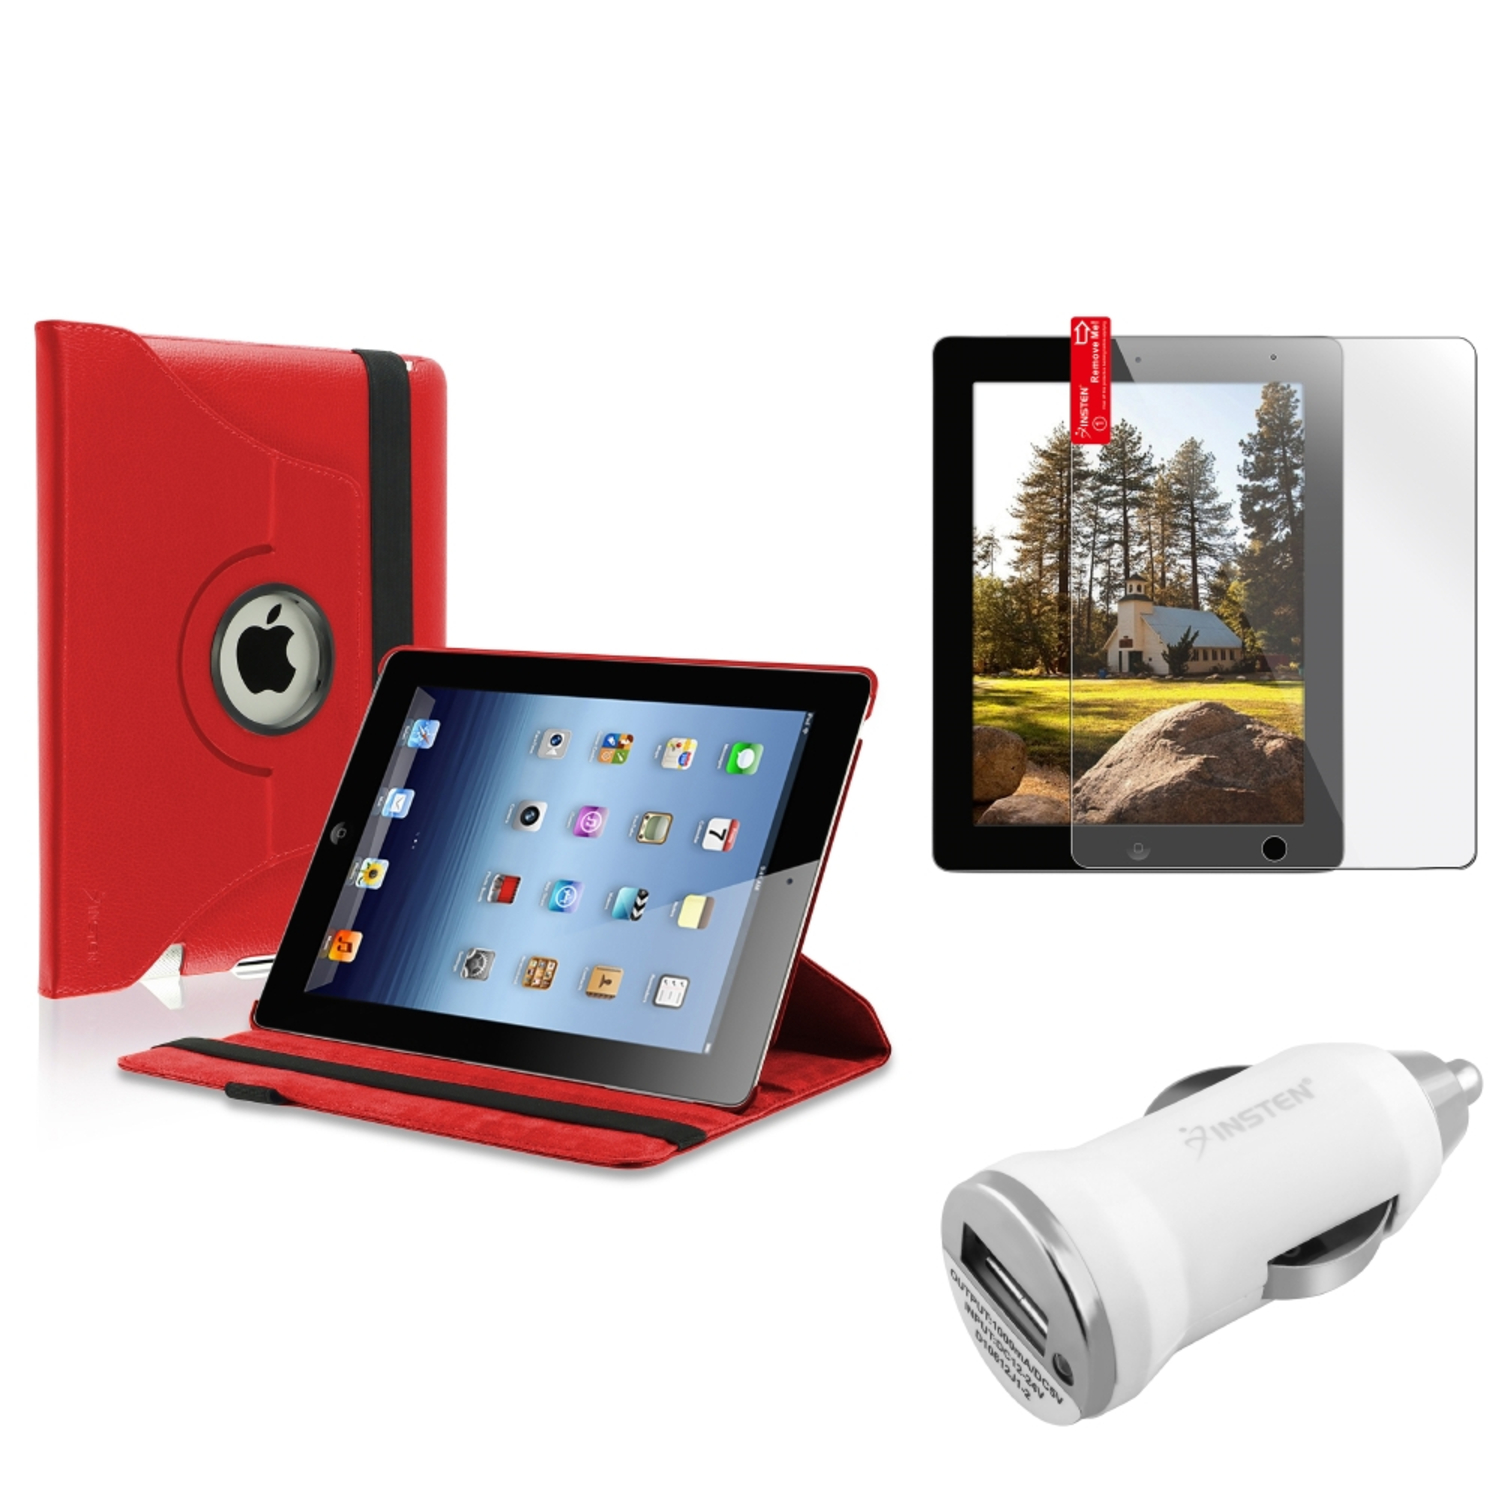 Insten Red 360 Magnetic Leather Case Protector Guard Car Charger for iPad 4/3/2 3G (Supports Auto Sleep/Wake)